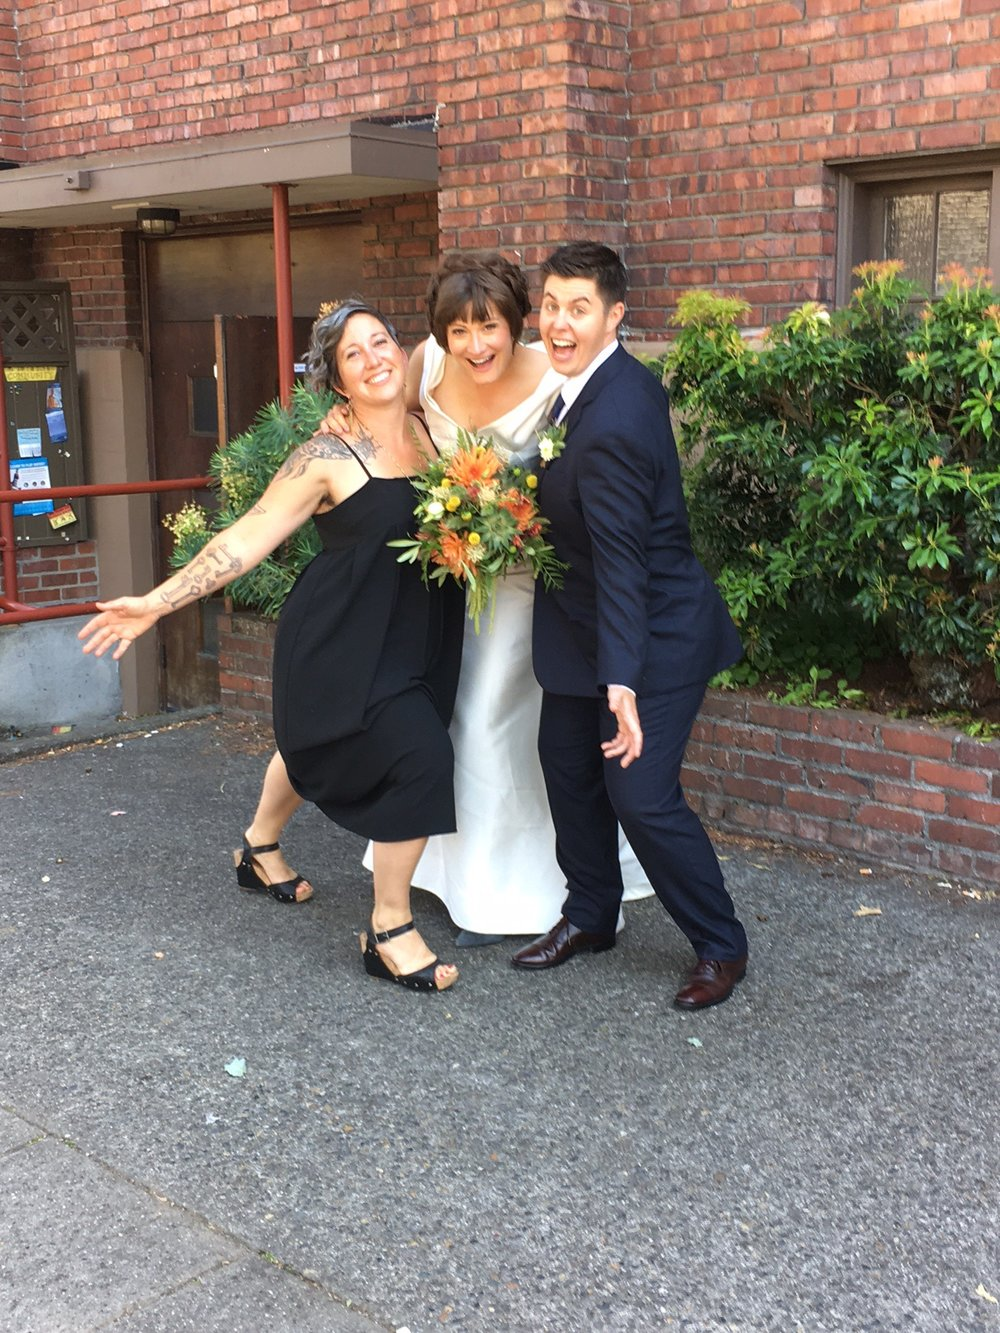 Excited wedding couple with guest and bouquet